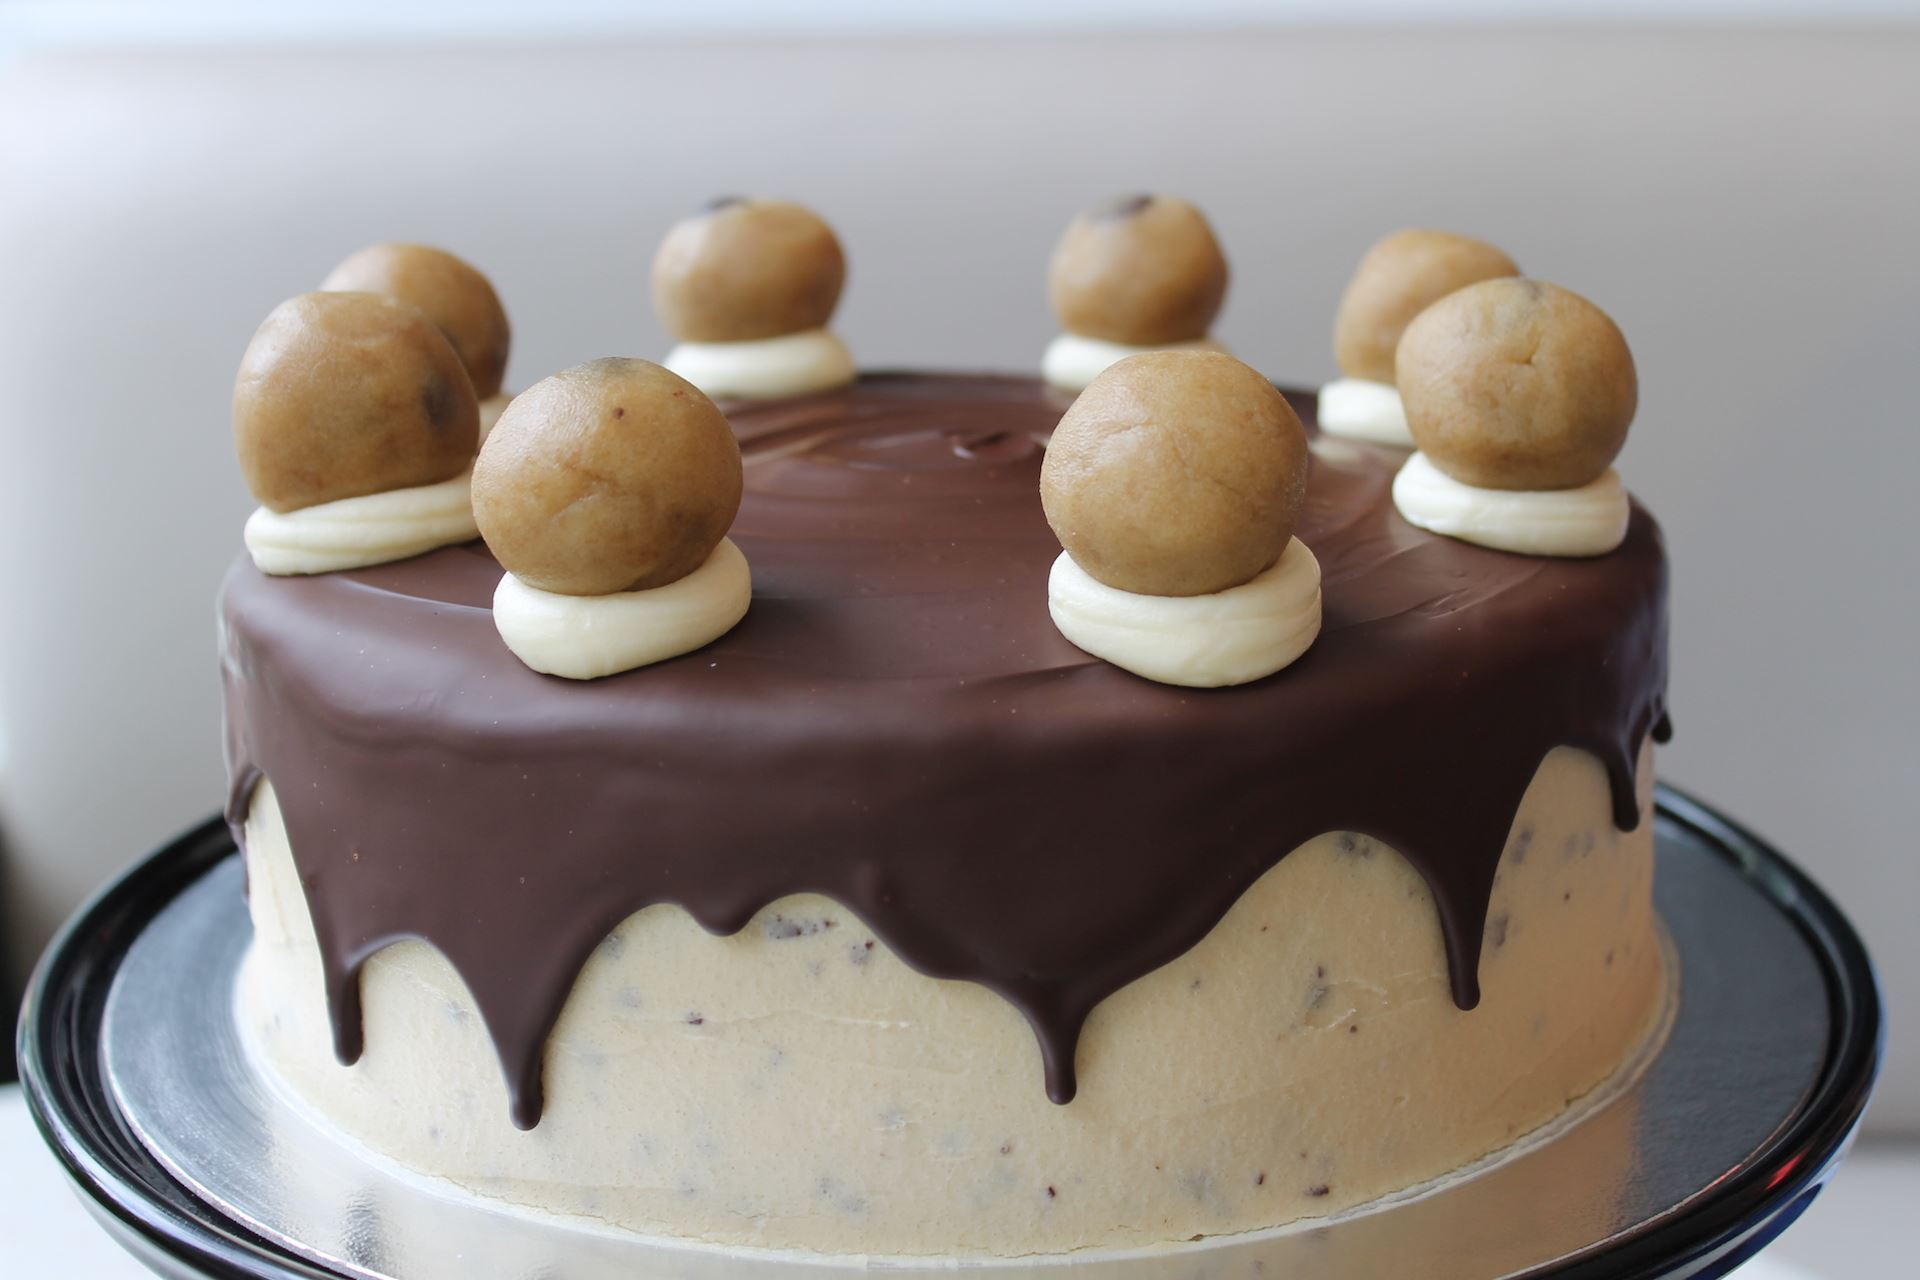 Layered Cookie Cake Recipes: Cookie Dough Layer Cake